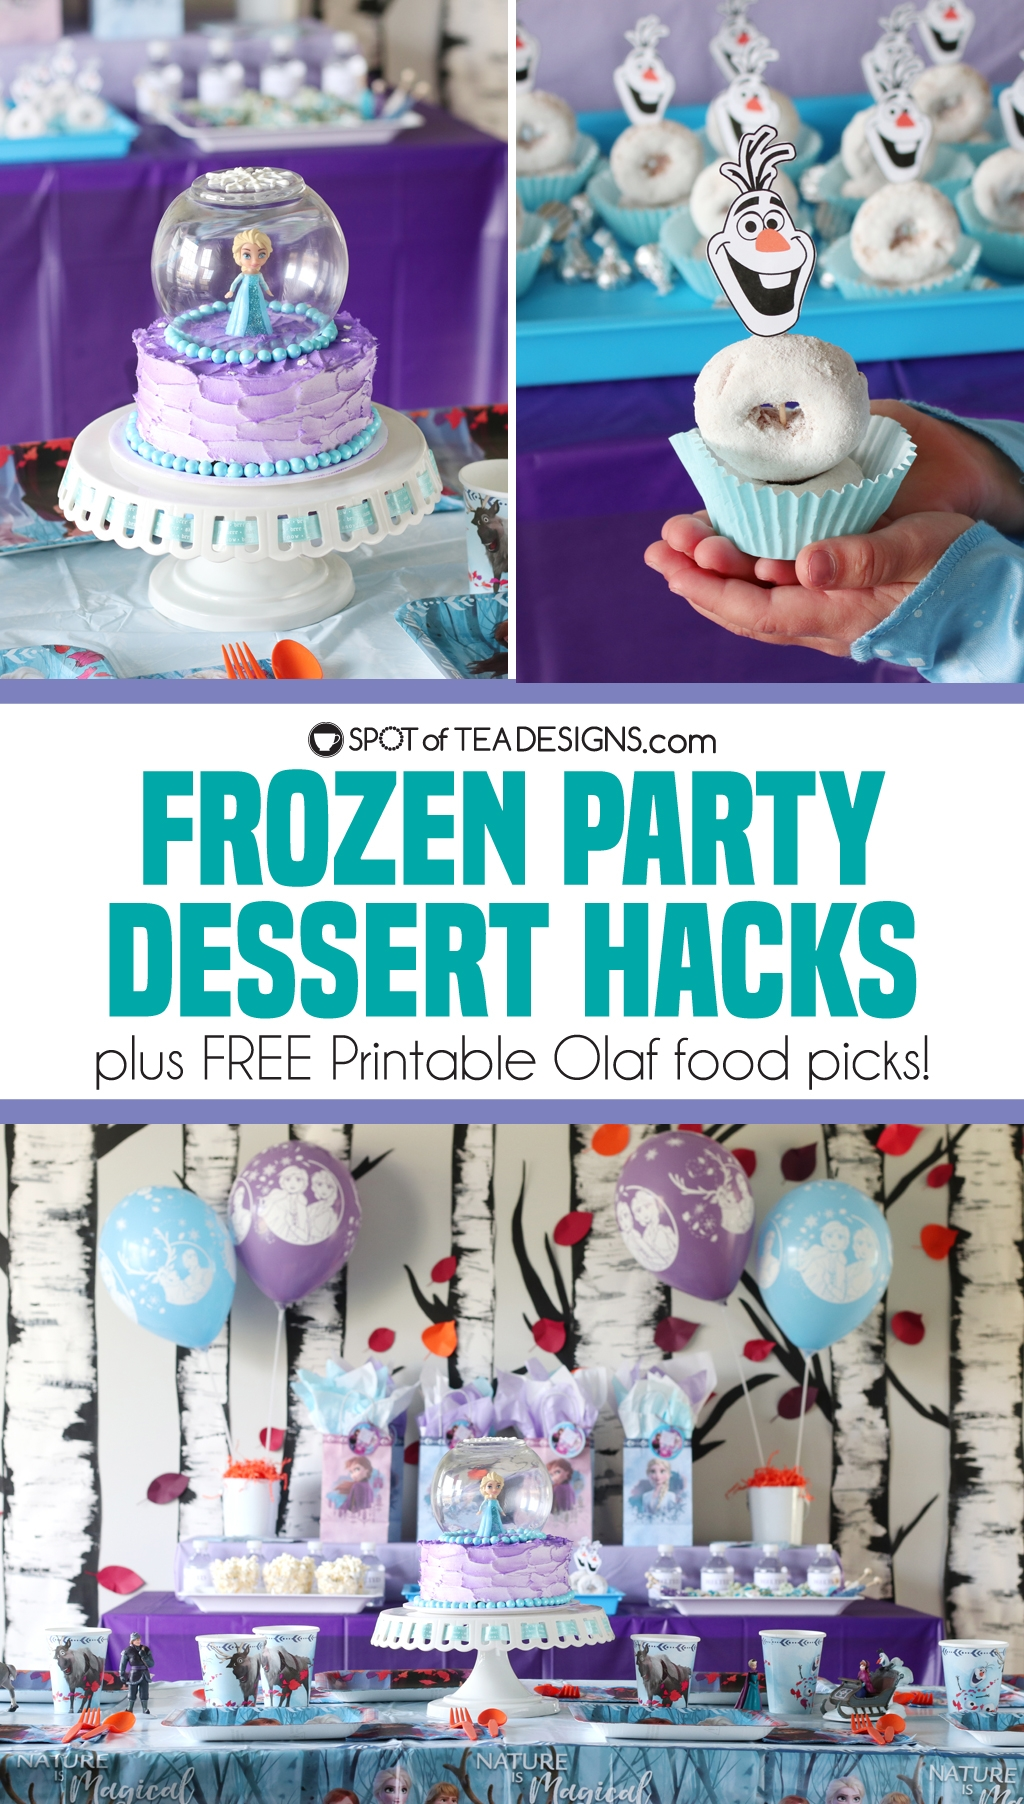 Frozen Party Dessert Hacks - grocery store cake makeover and Free printable Olaf Food picks | spotofteadesigns.com